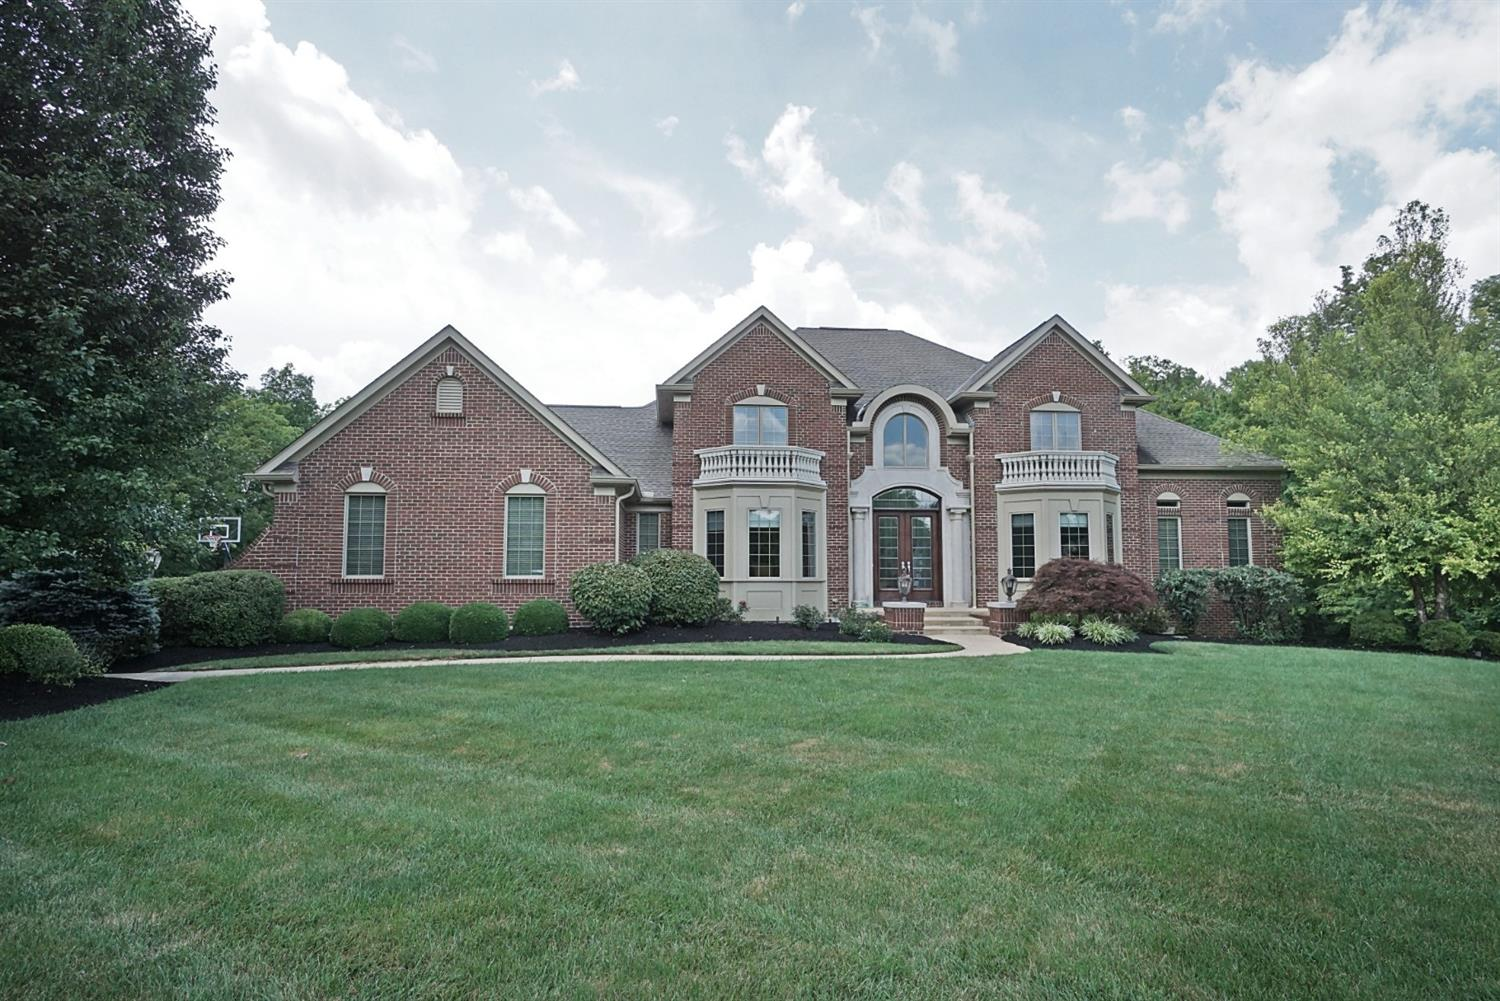 369 Aspen Ridge Dr Turtle Creek Twp OH